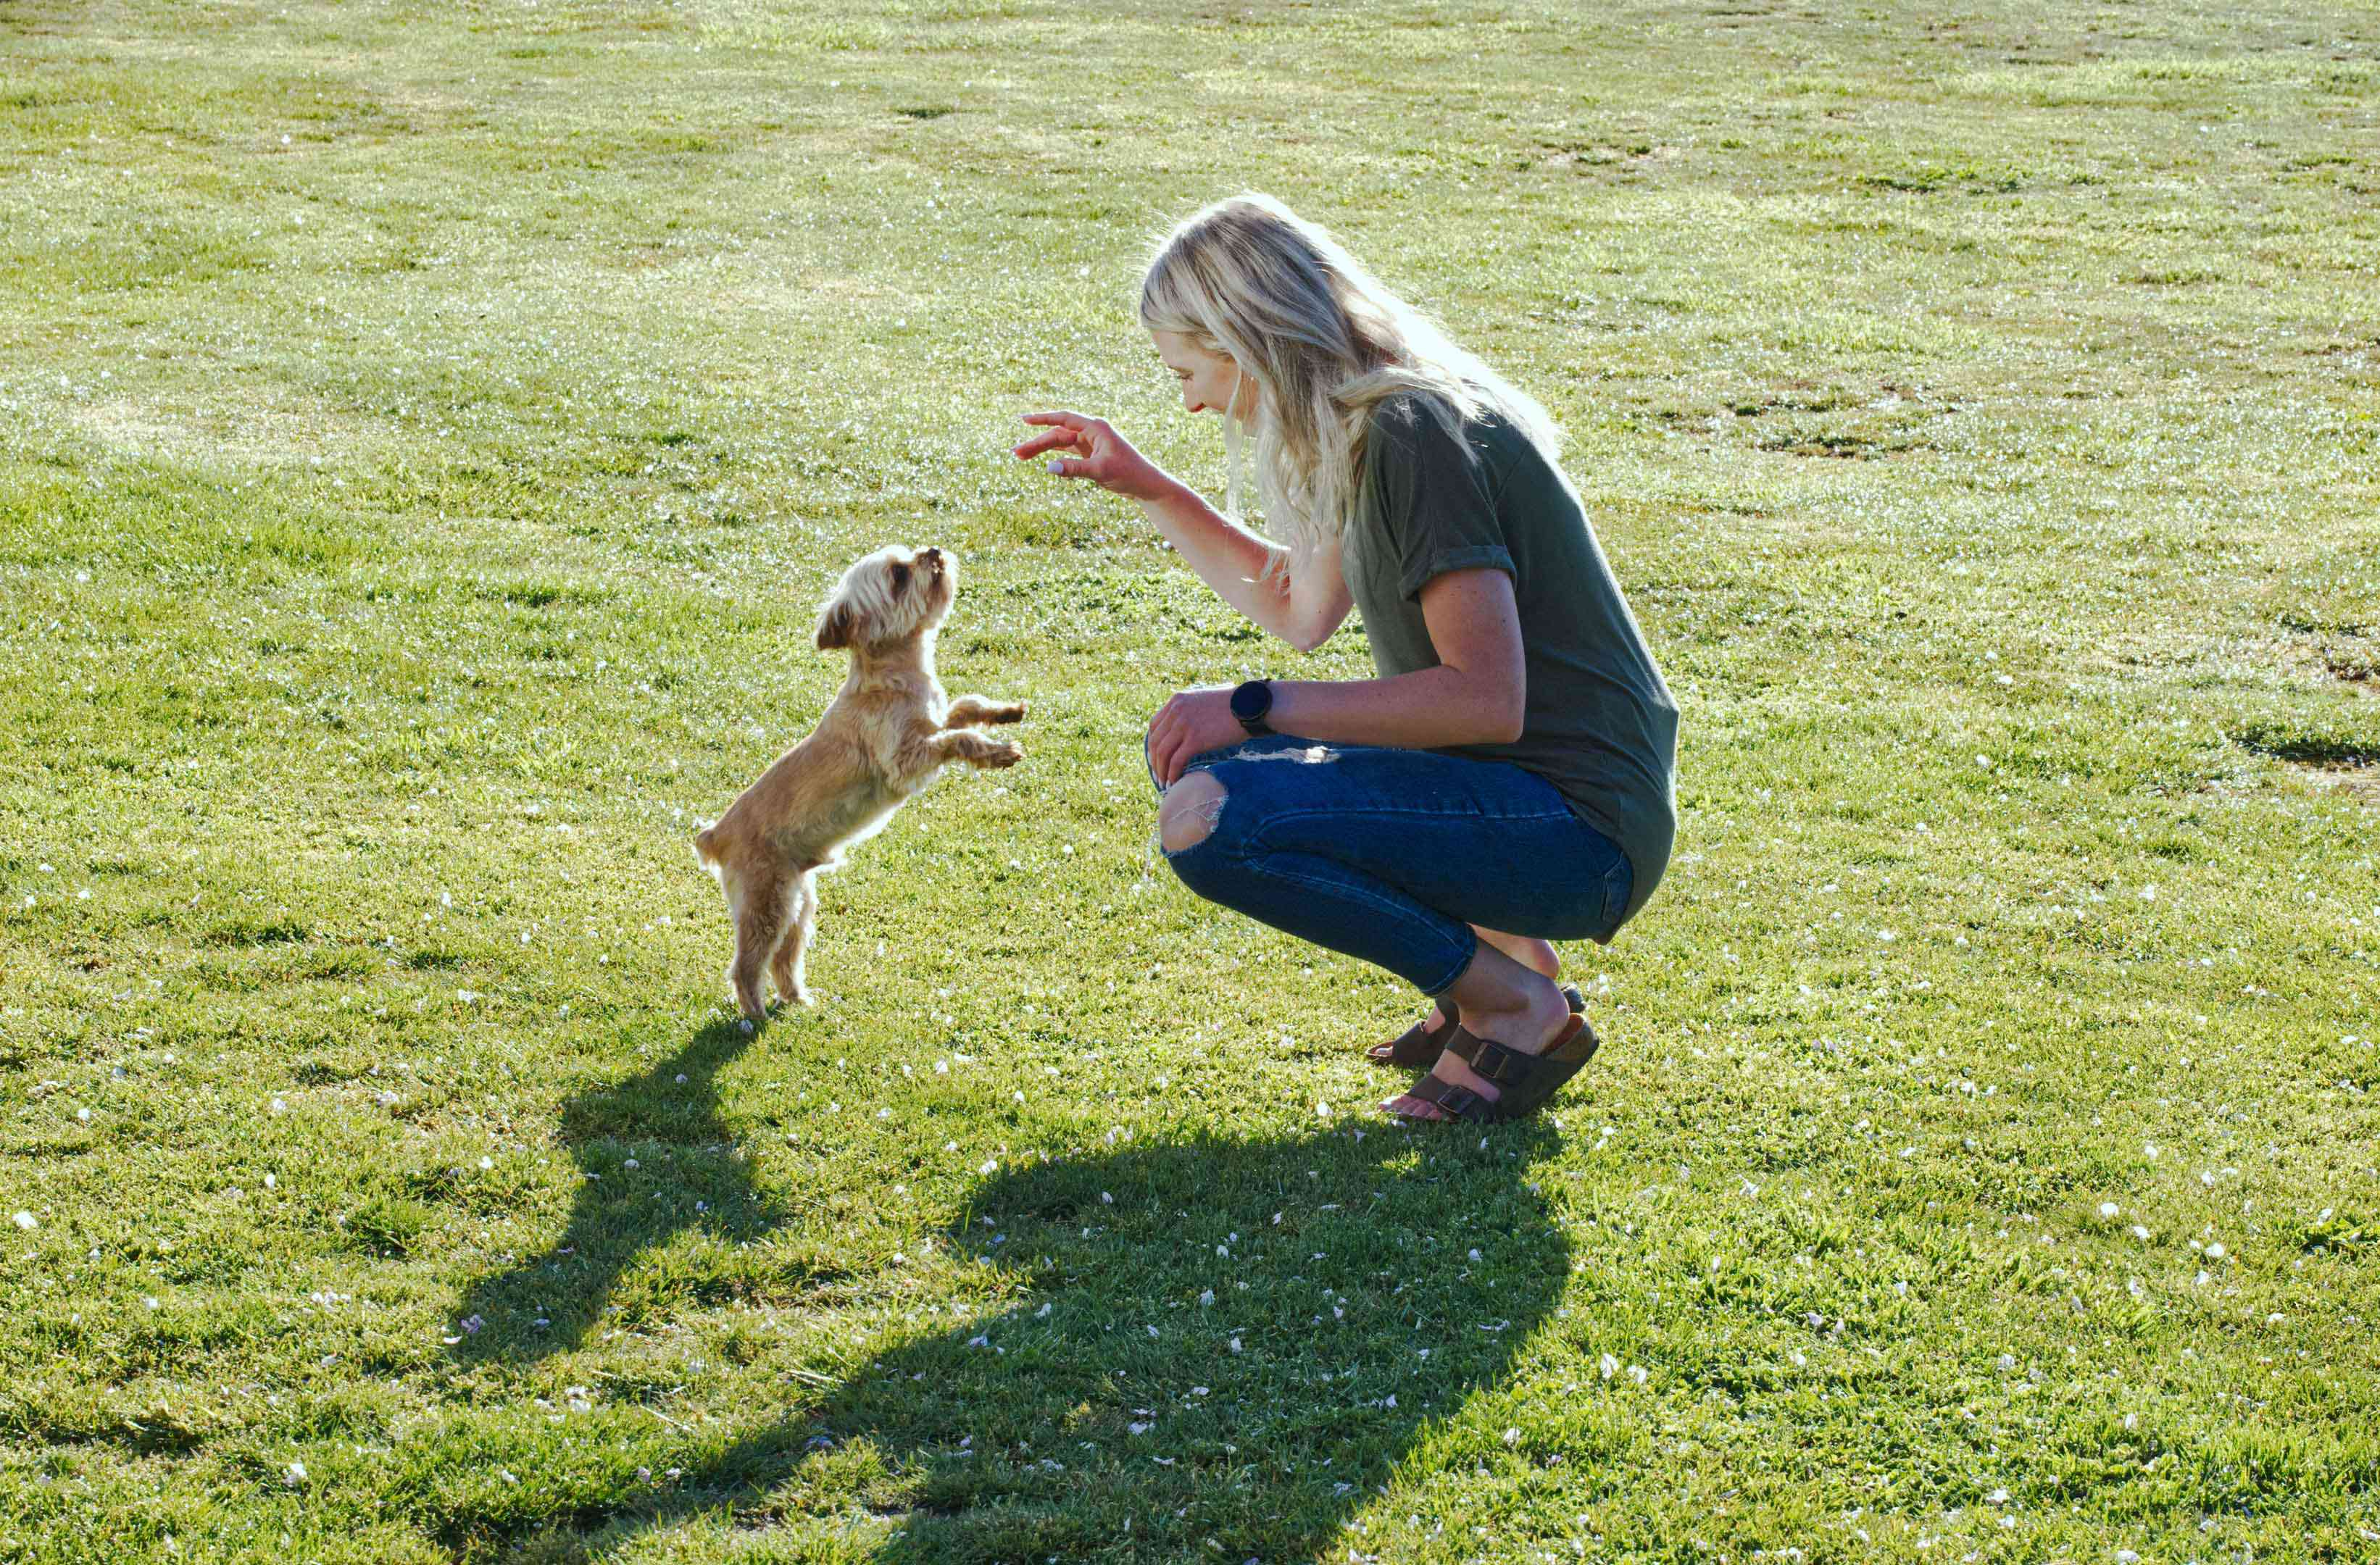 blonde woman and small dog perform tricks while playing outside on green lawn